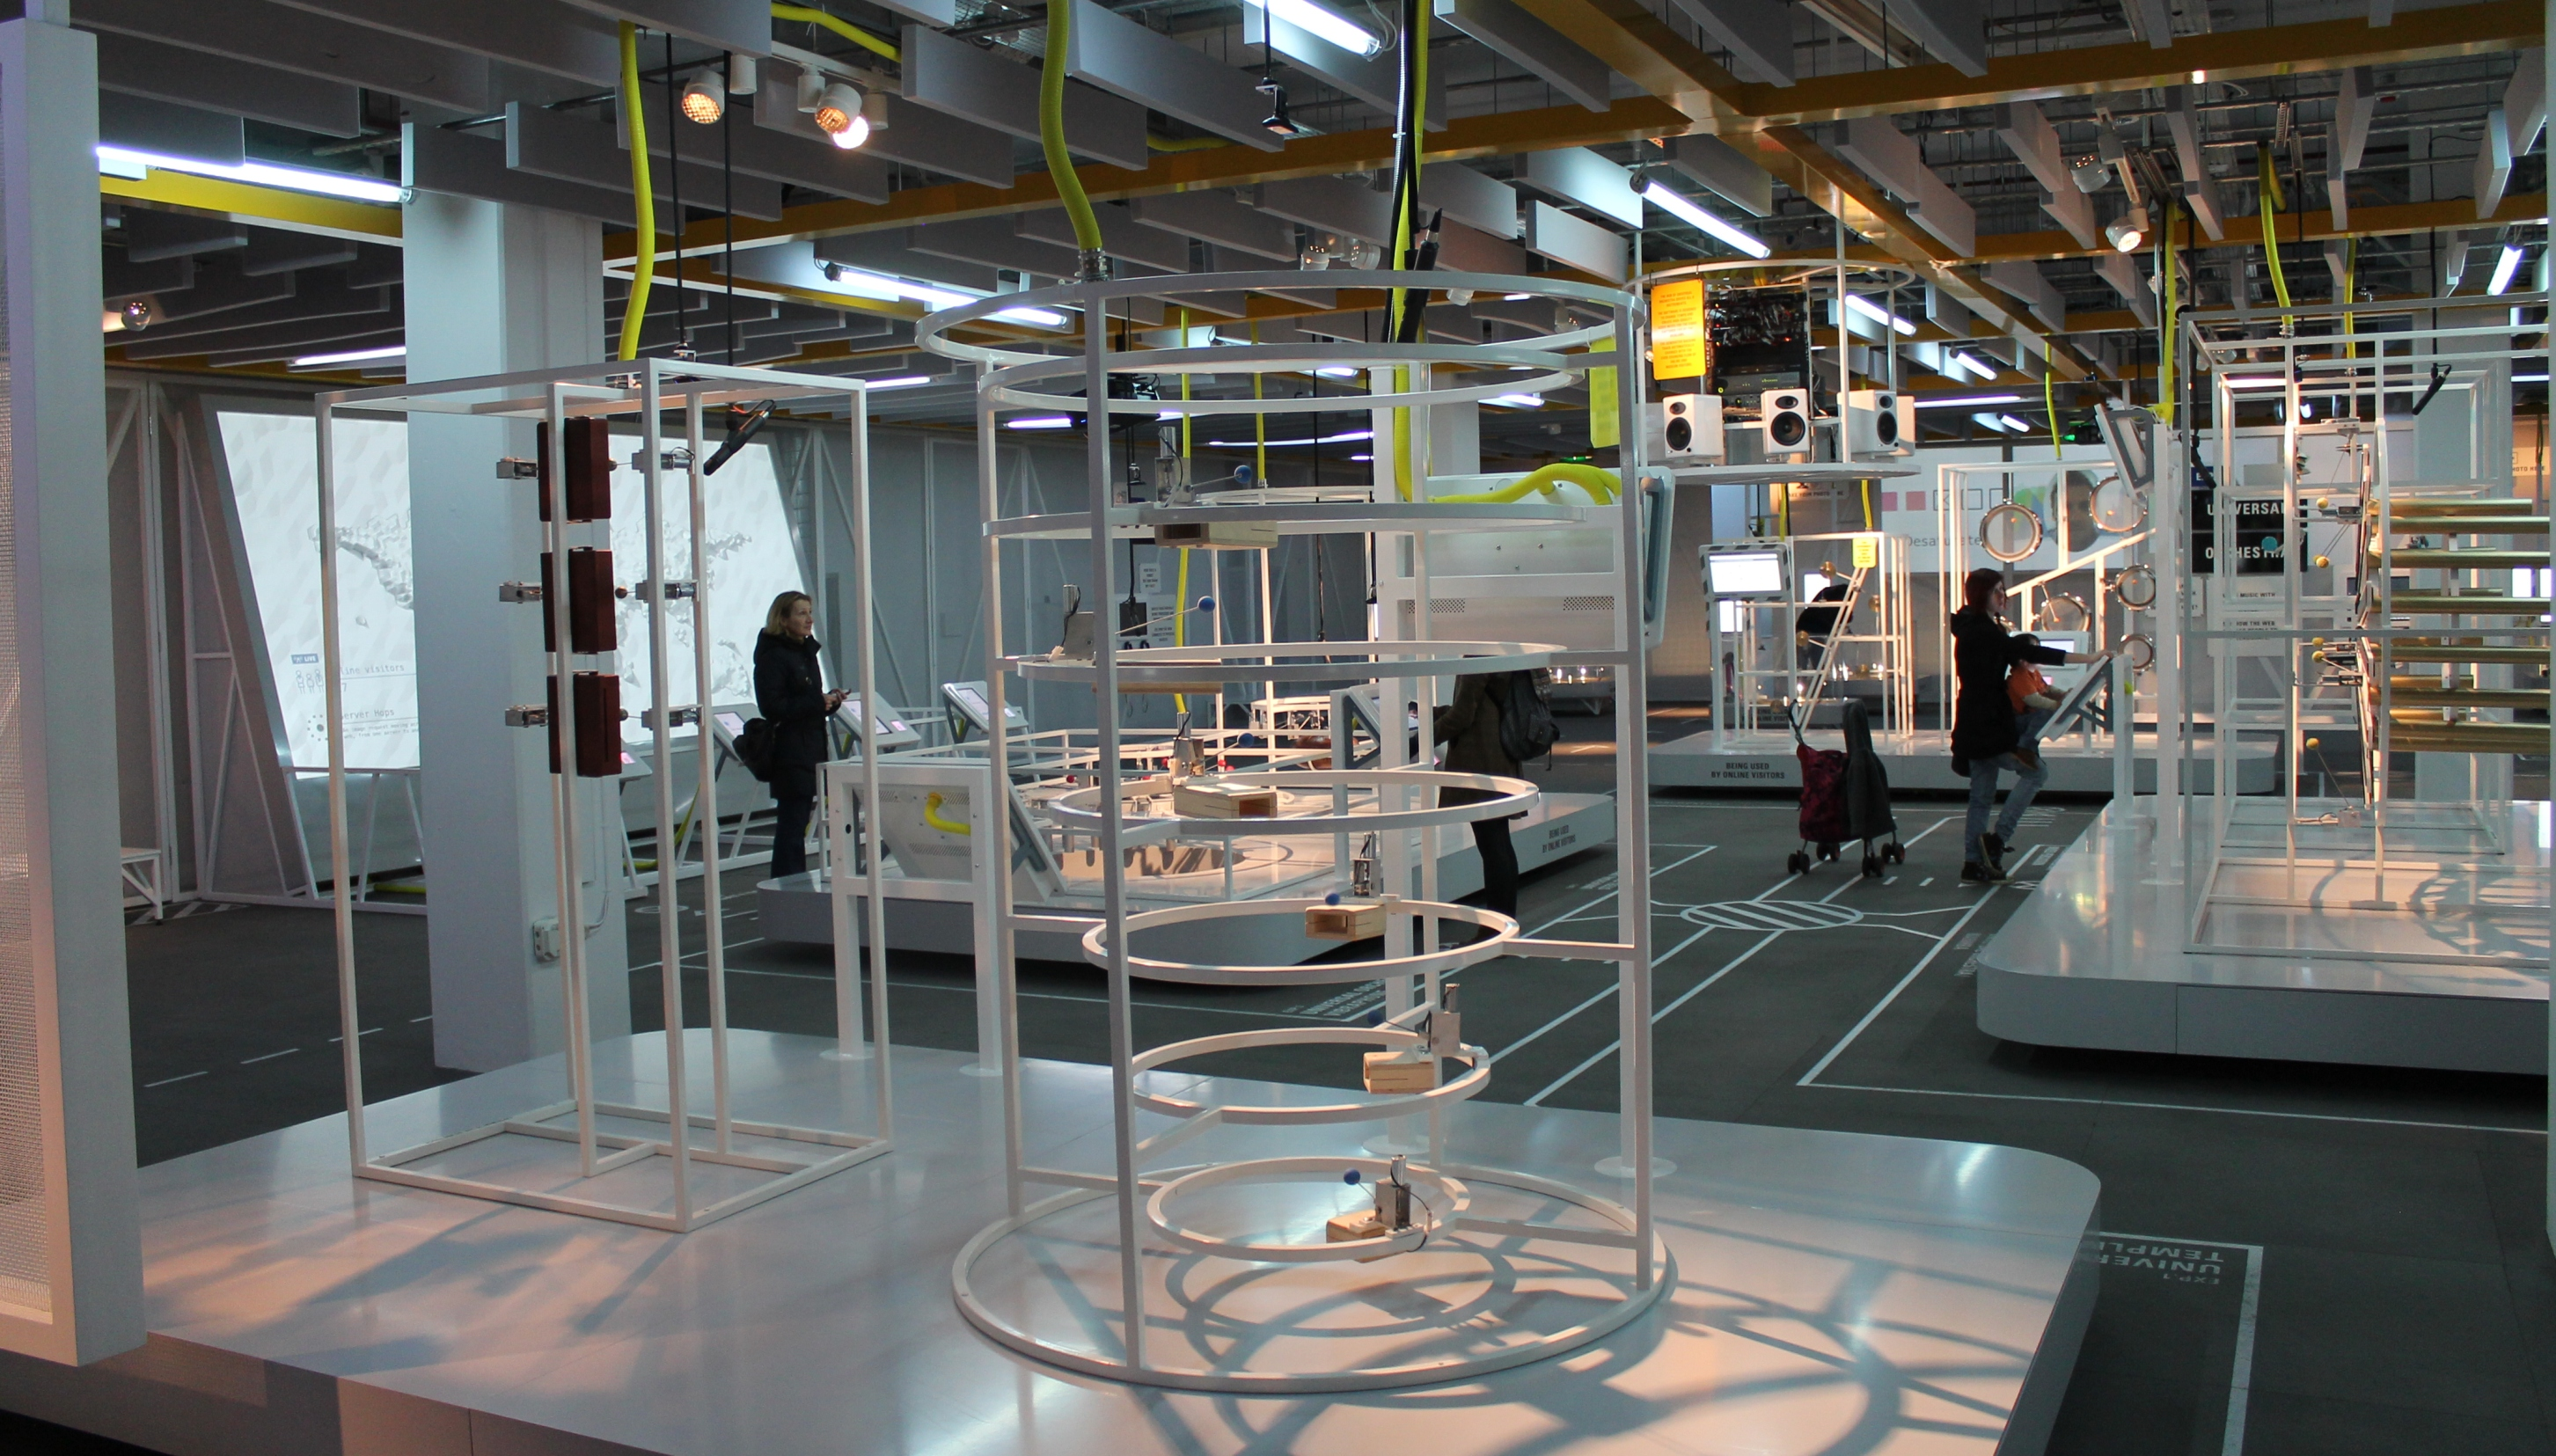 Inside Google's Web Lab at London's Science Museum